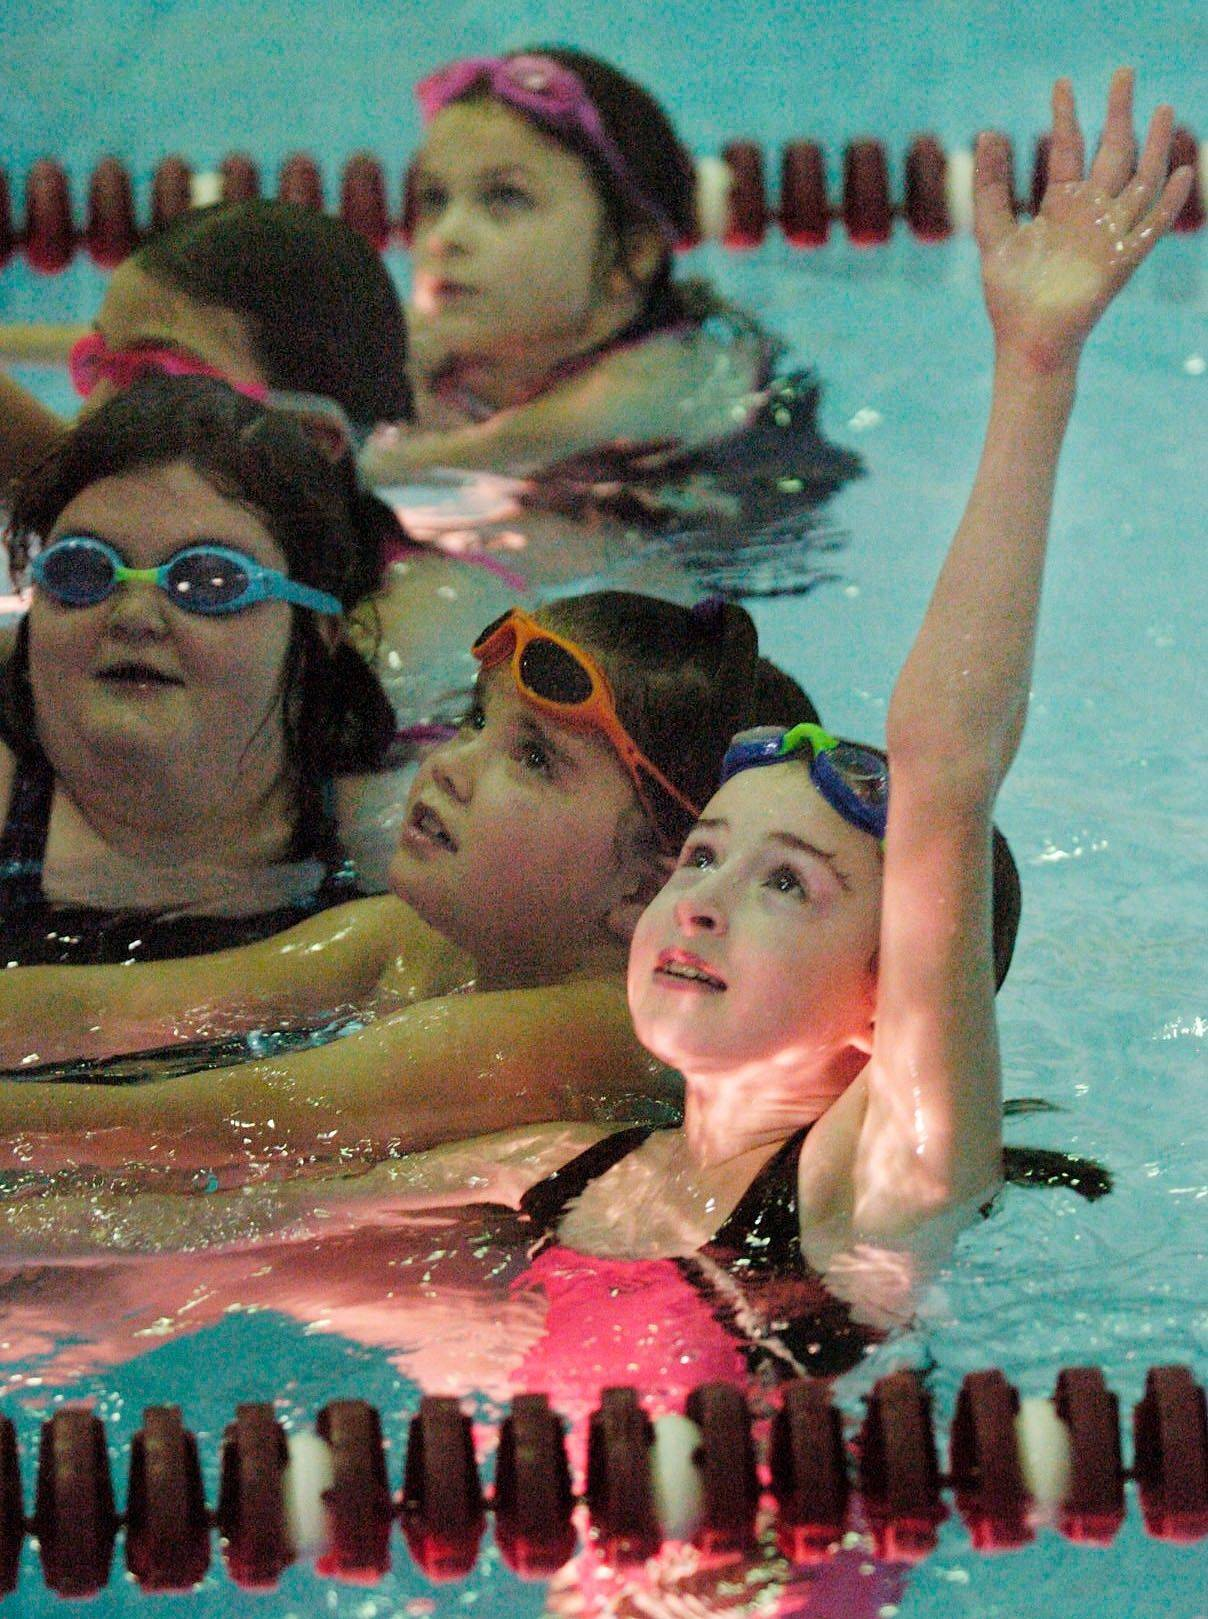 Katie Shaughnessy raises her hand to ask a question during Otters practice for the Arlington Heights Park District swim team.